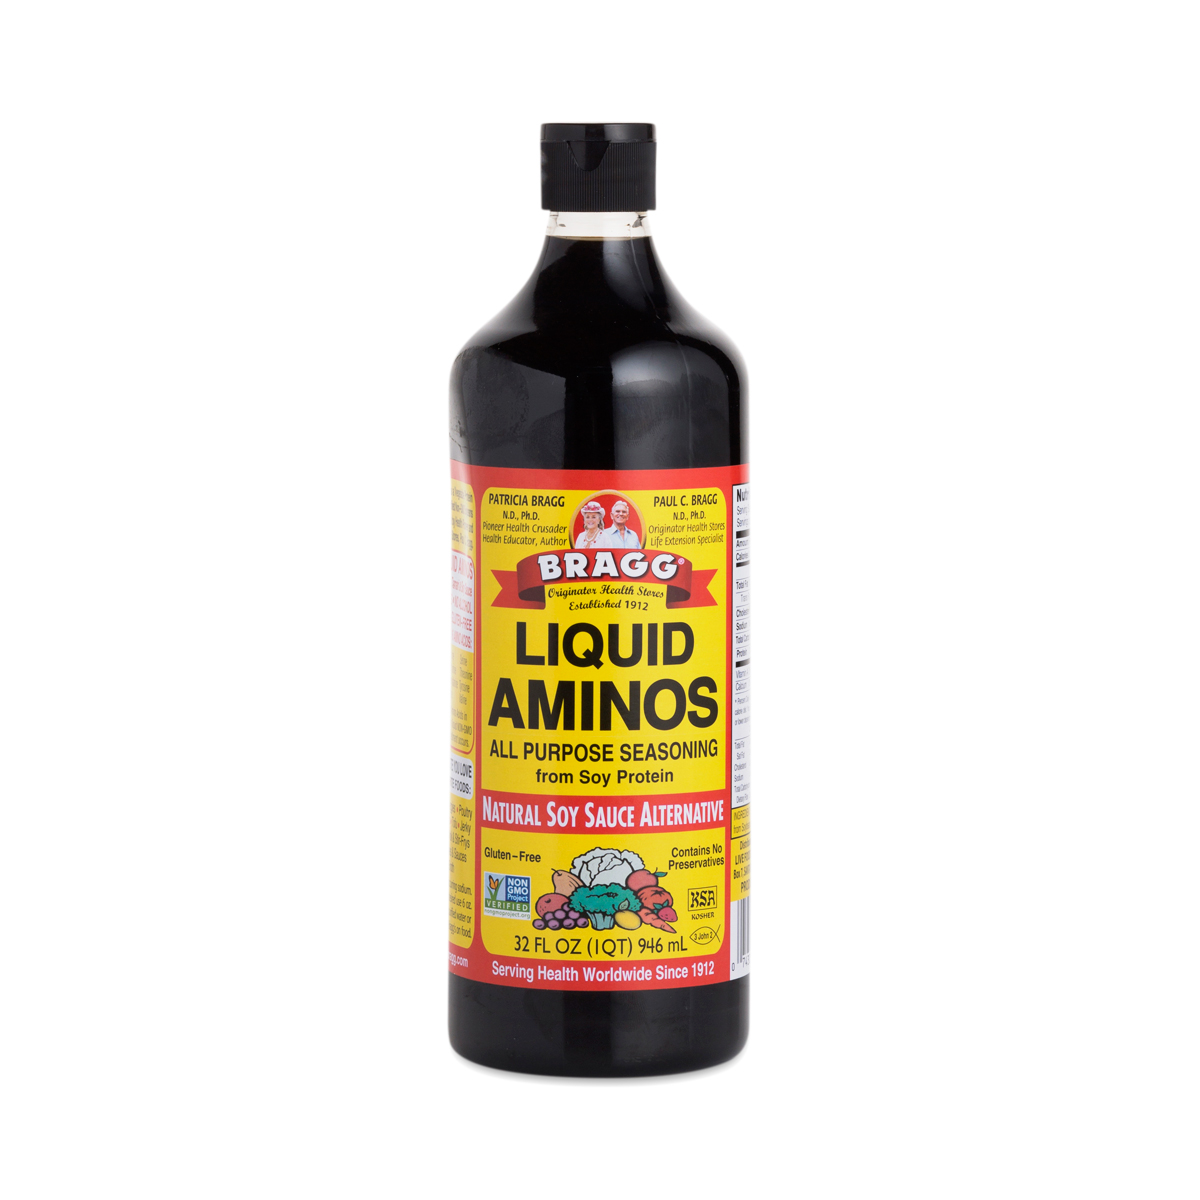 Where to buy liquid aminos